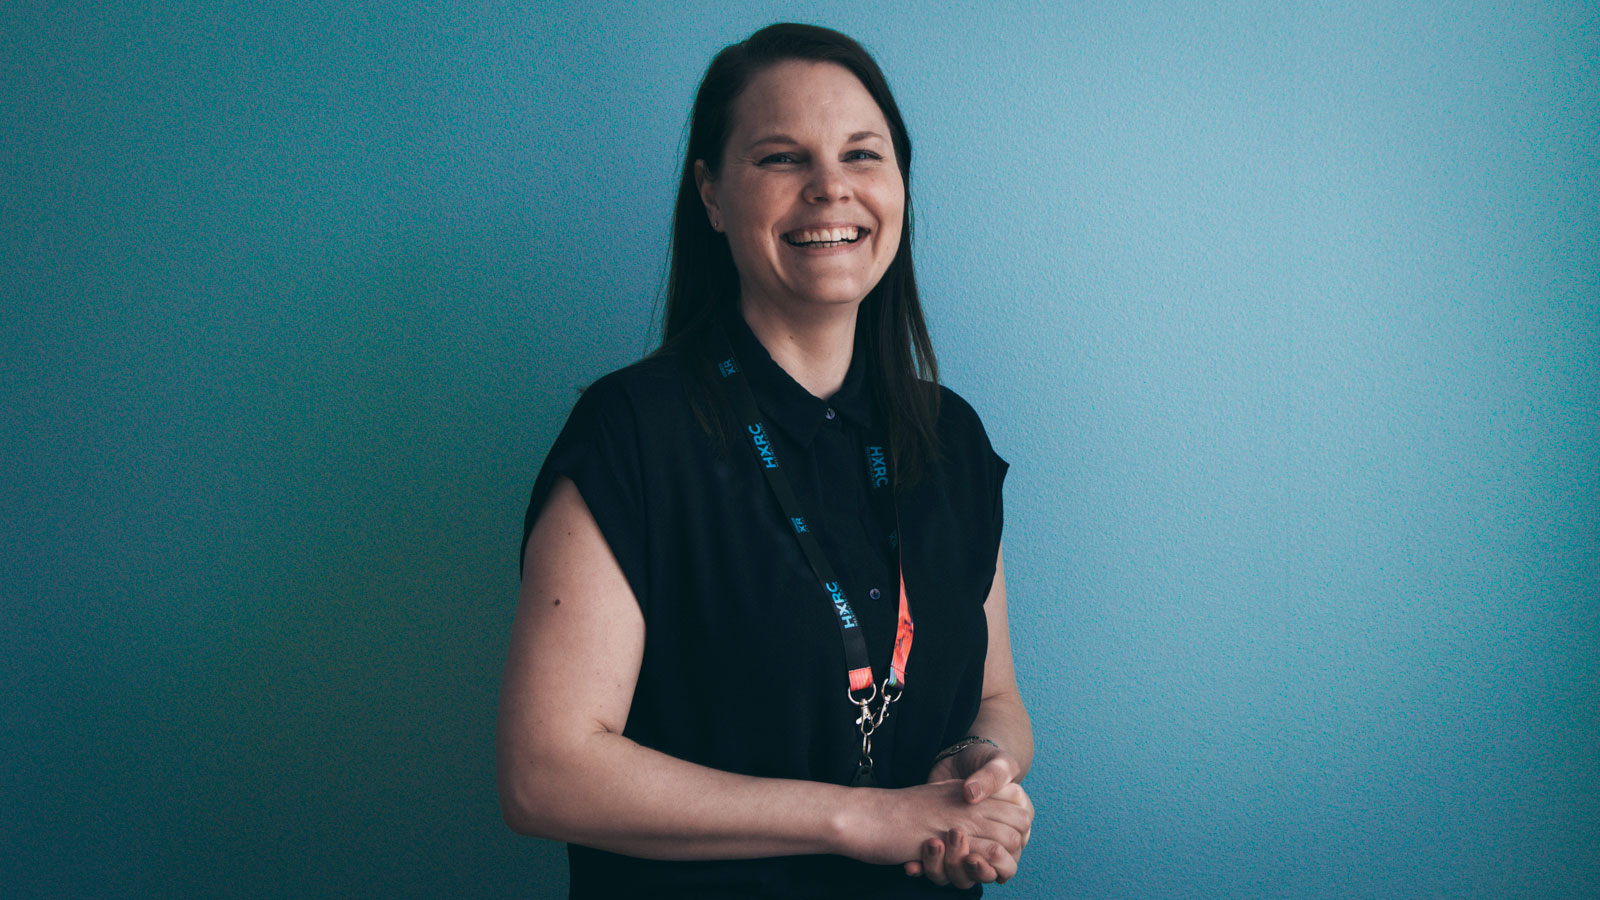 Essi Leivo, Event & Collaboration Specialist at Helsinki XR Center, laughing heartwarmingly.